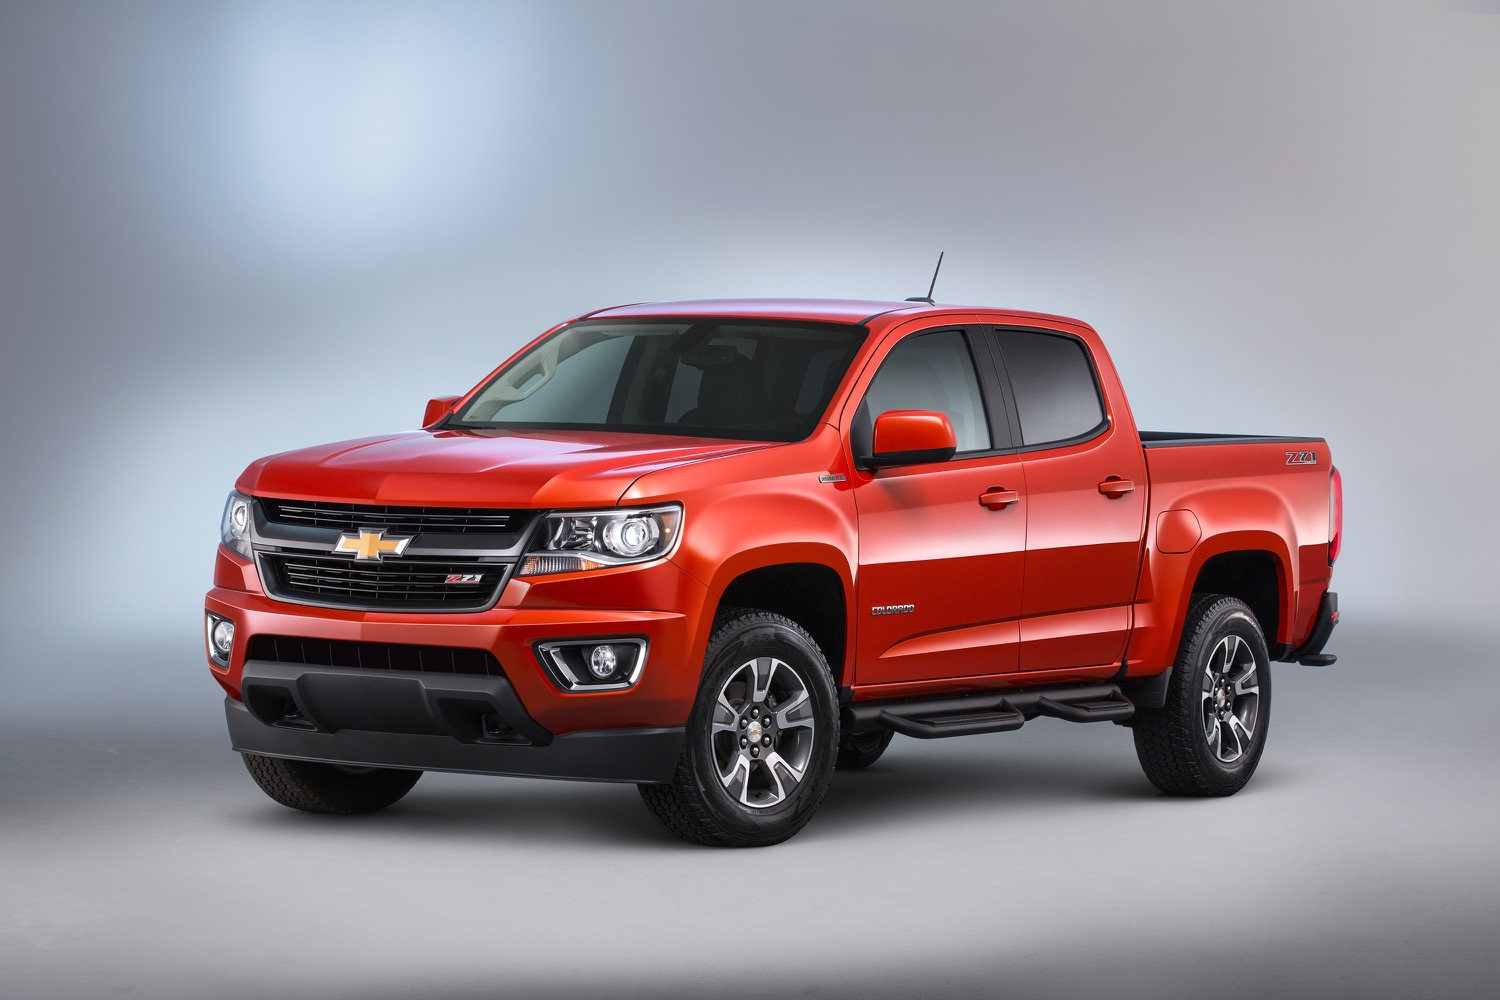 2016 Chevrolet Colorado (Chevy) Review, Ratings, Specs